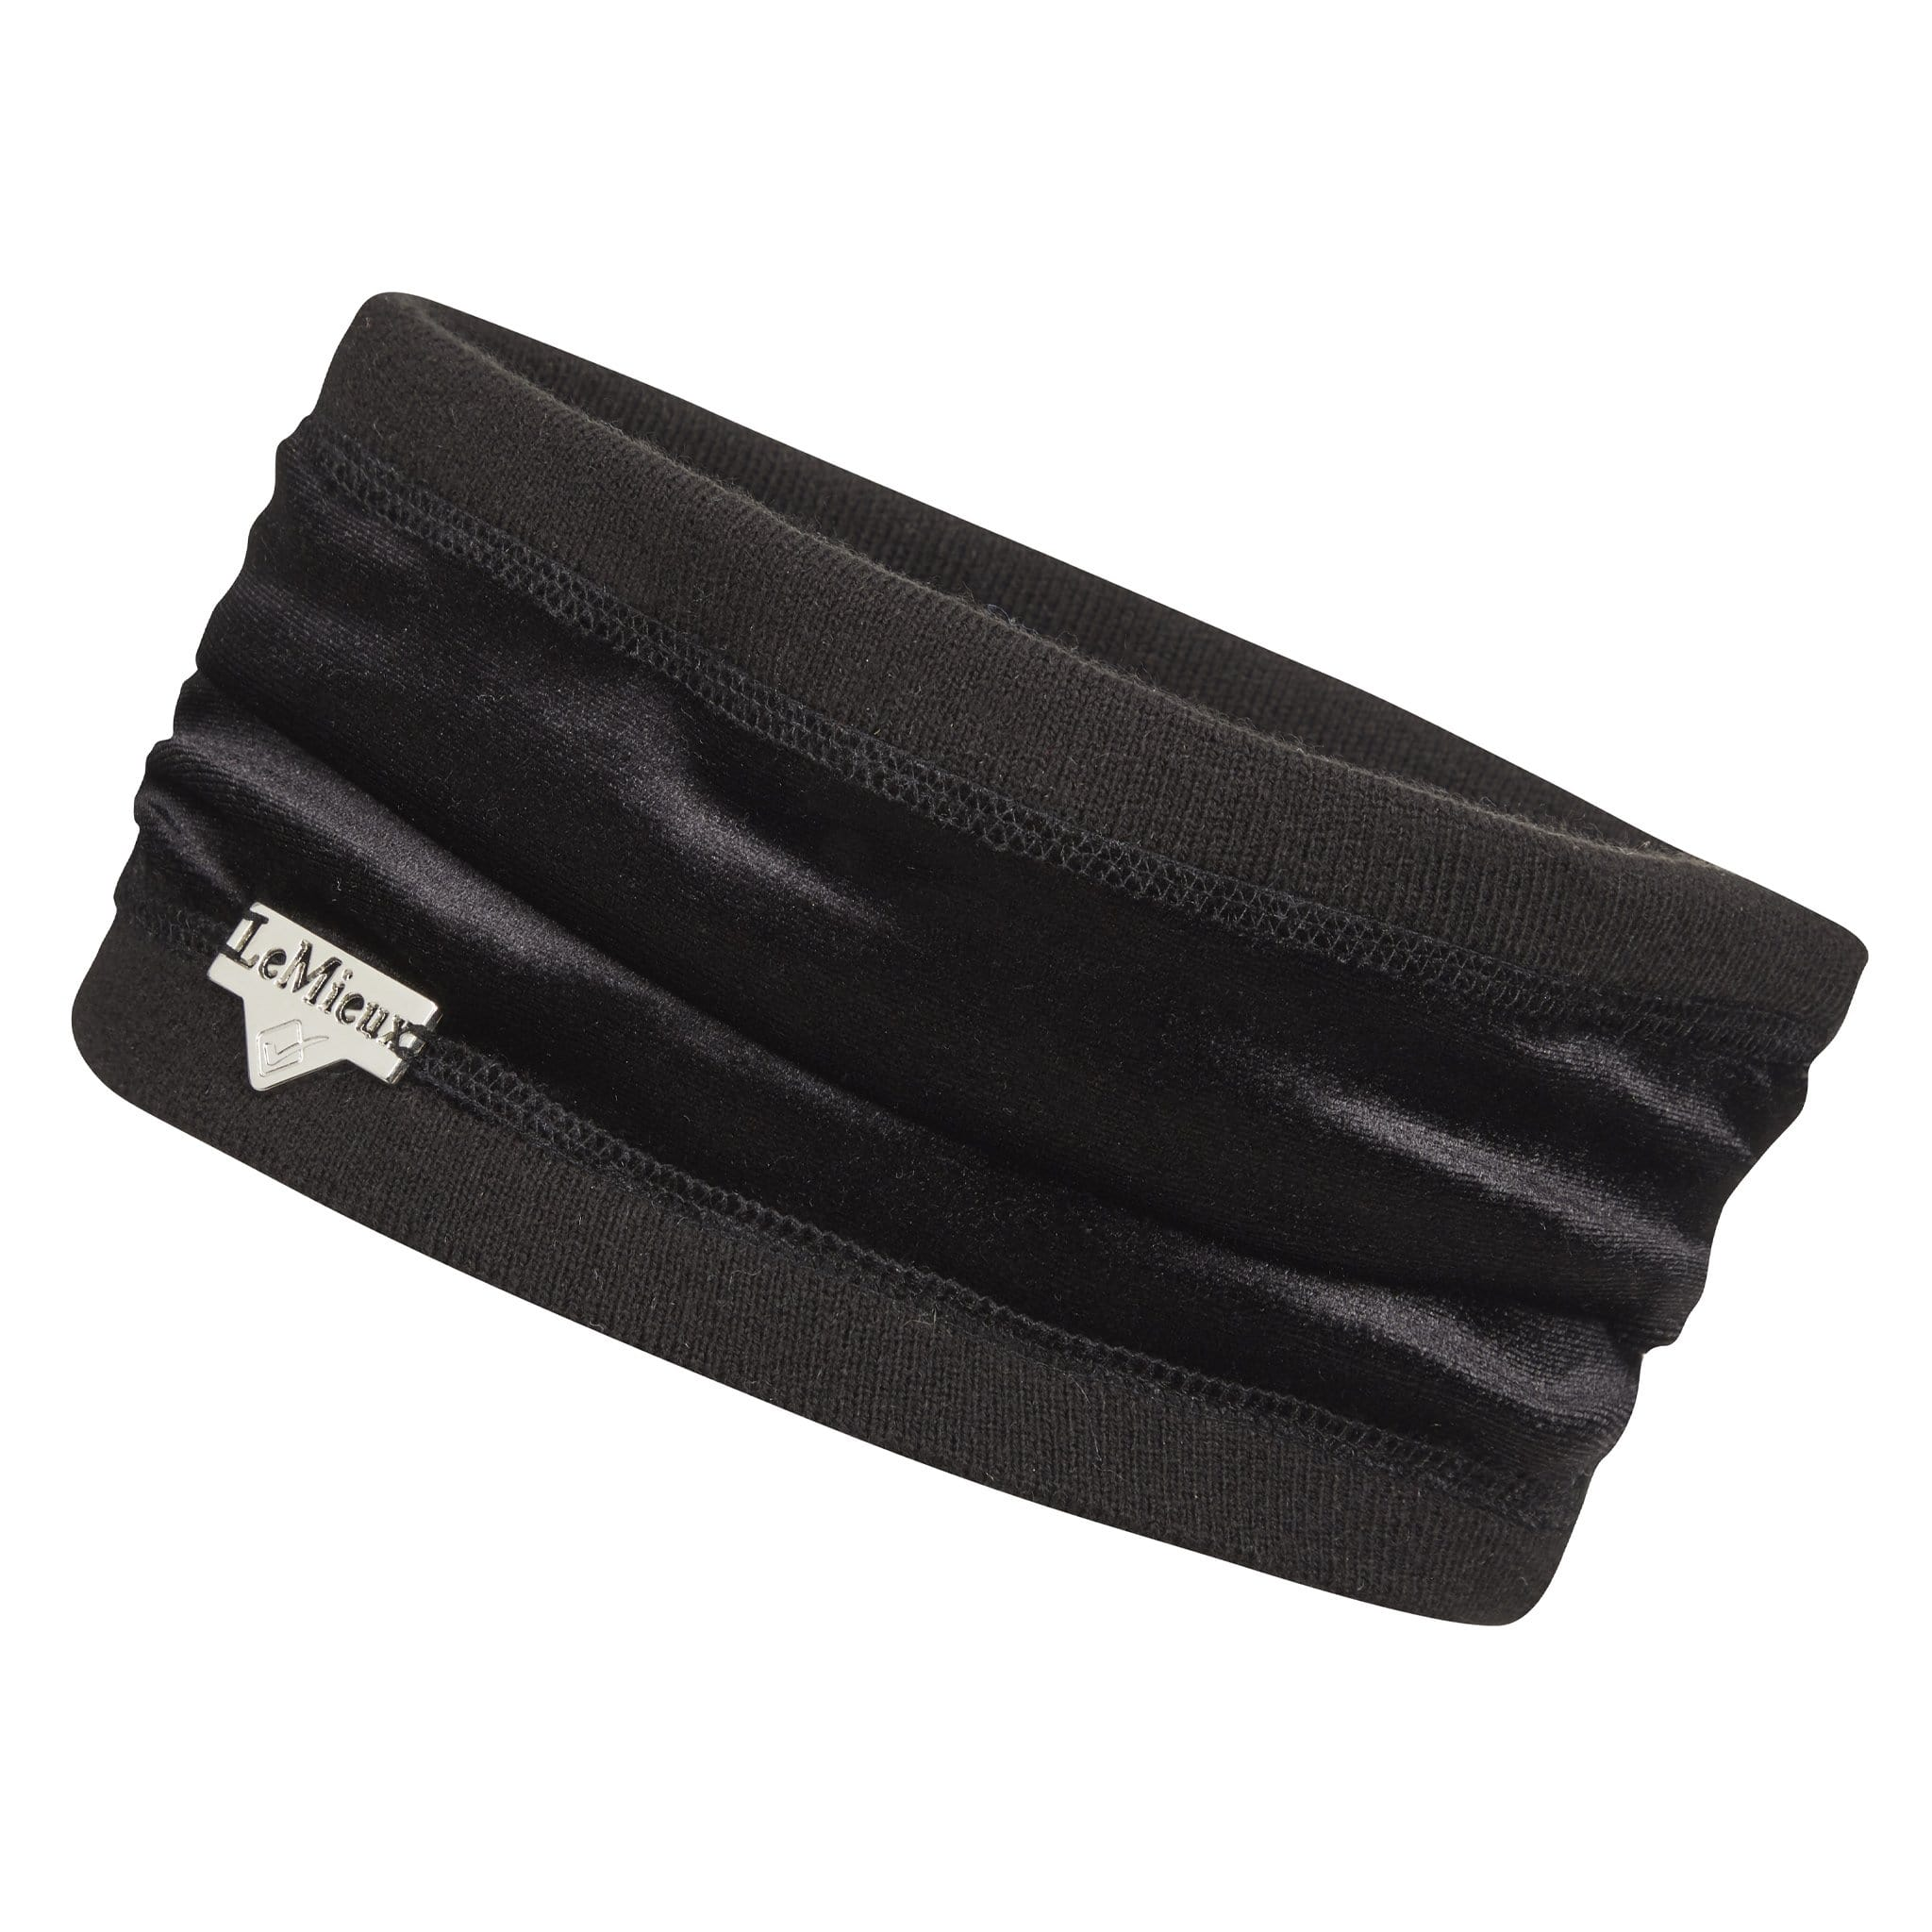 LeMieux Meribel Winter Headband Black 5044